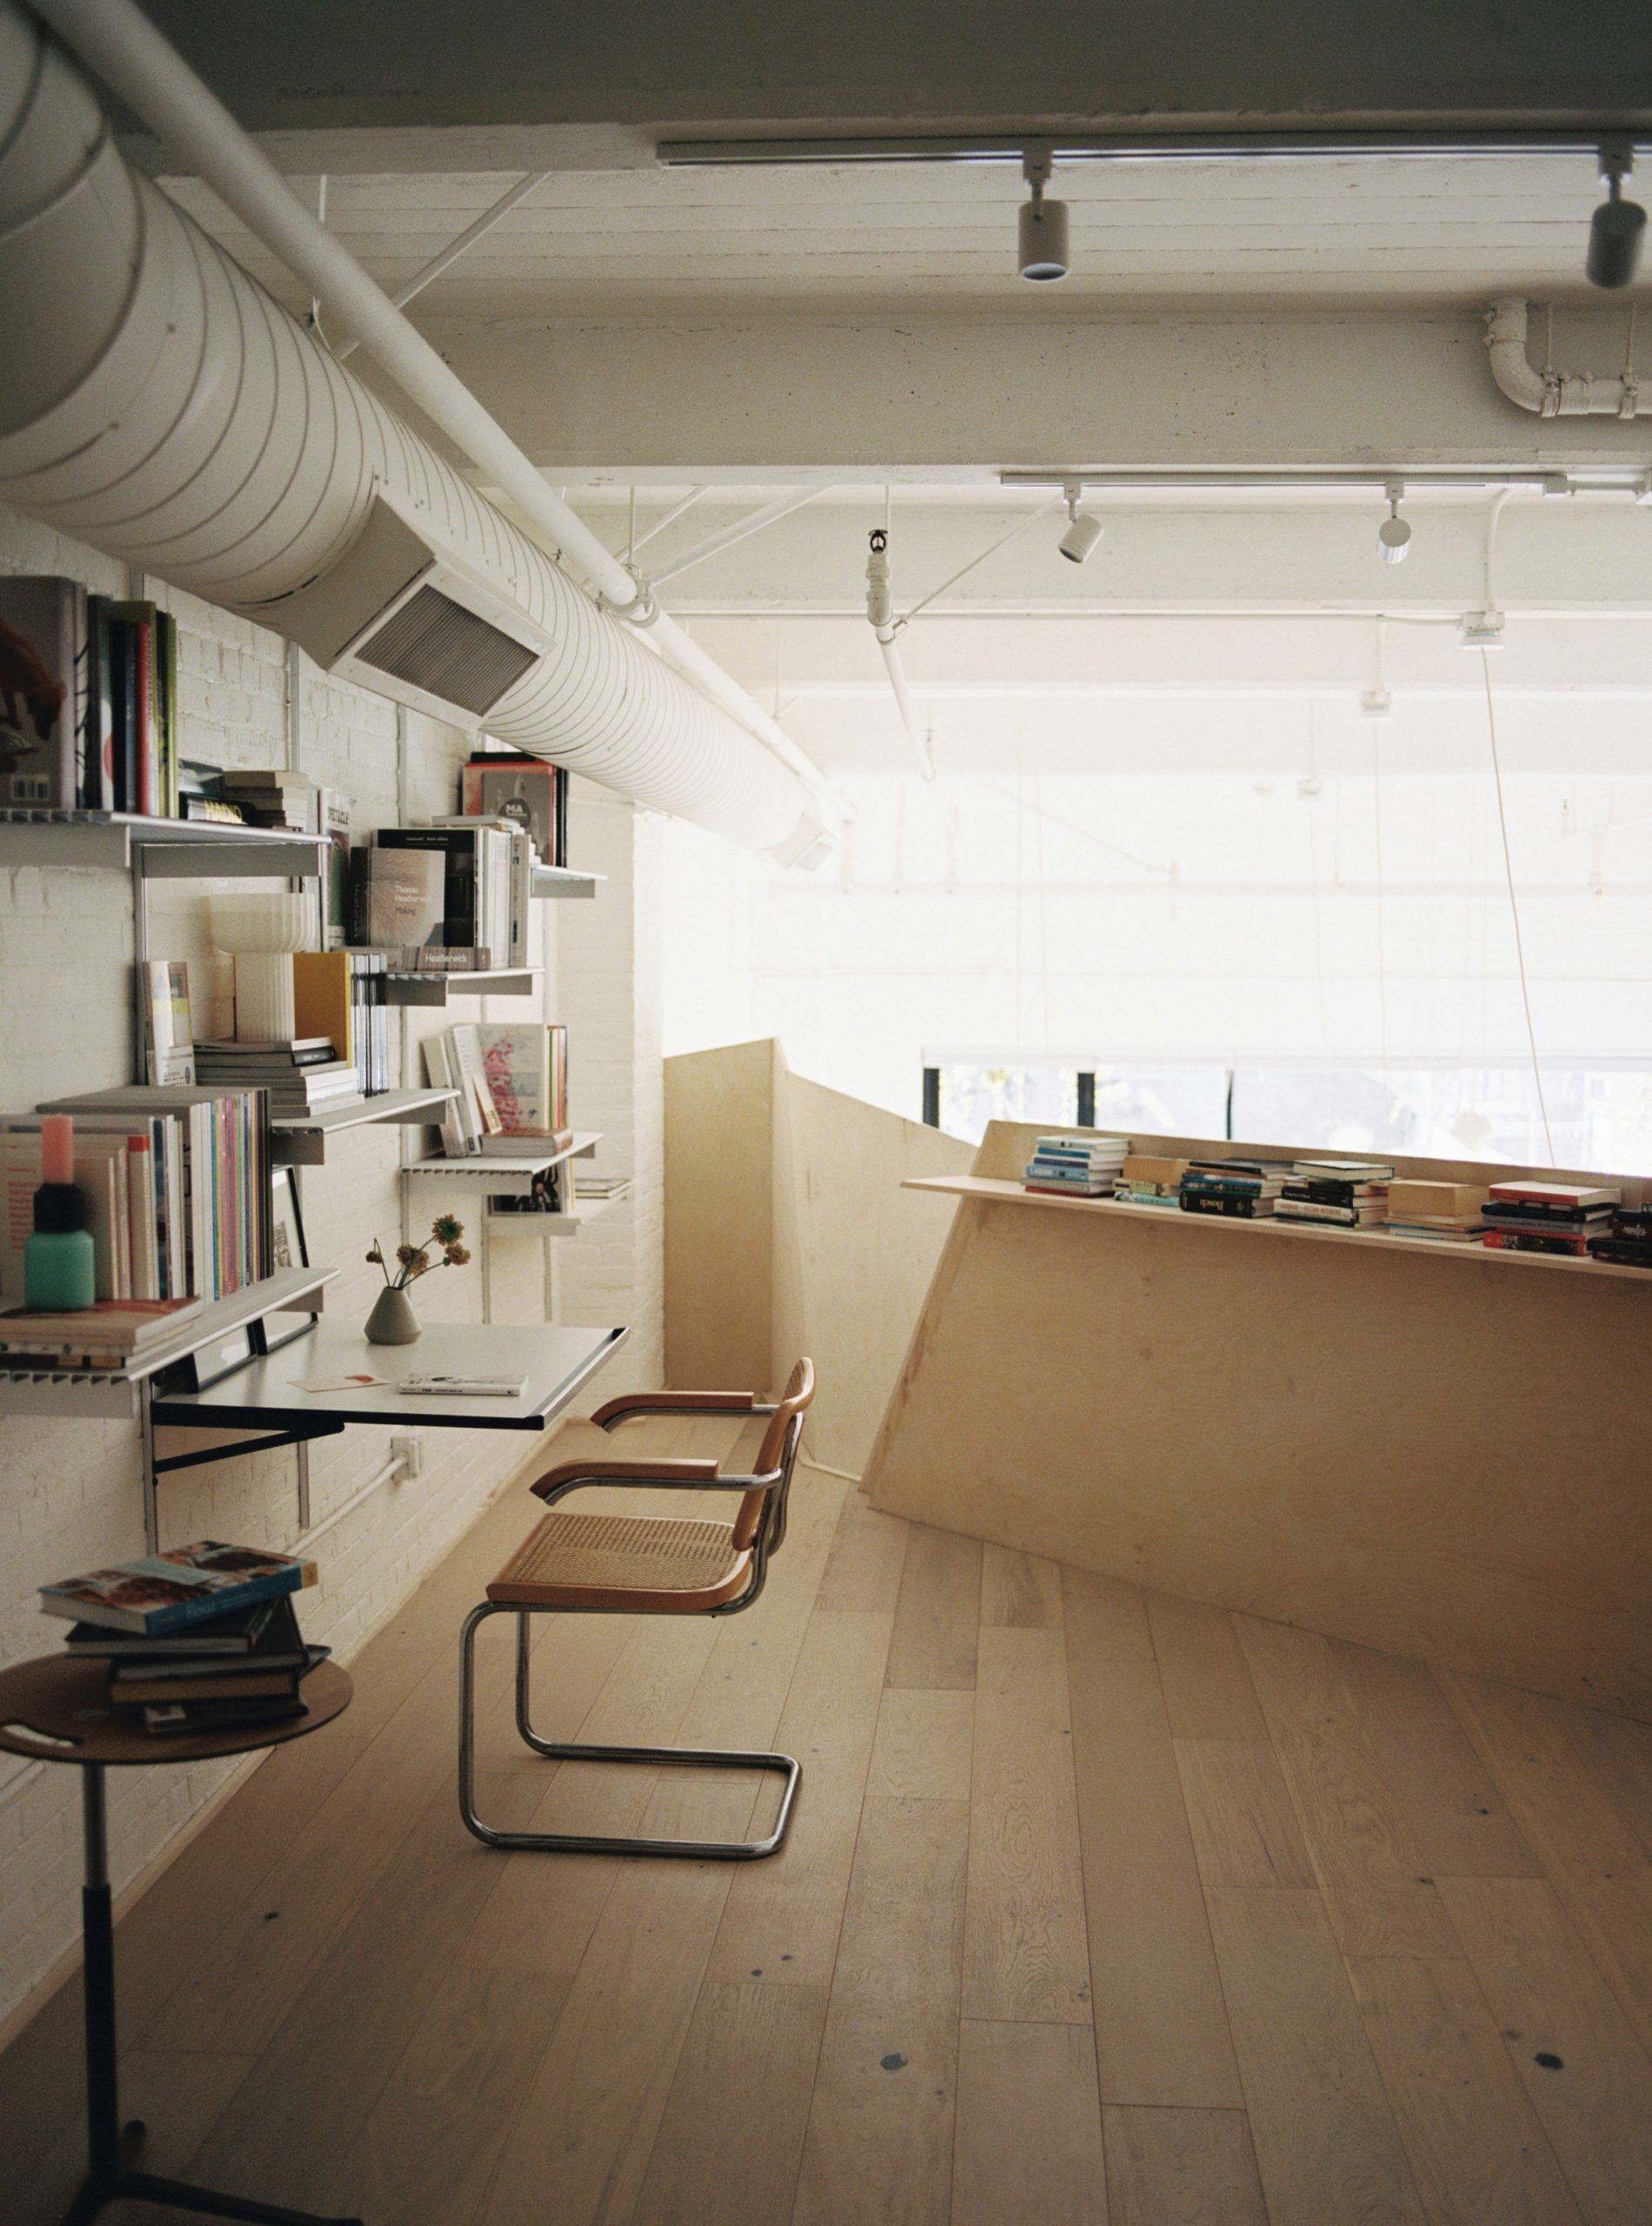 OWIU Studio adds home office space to apartment